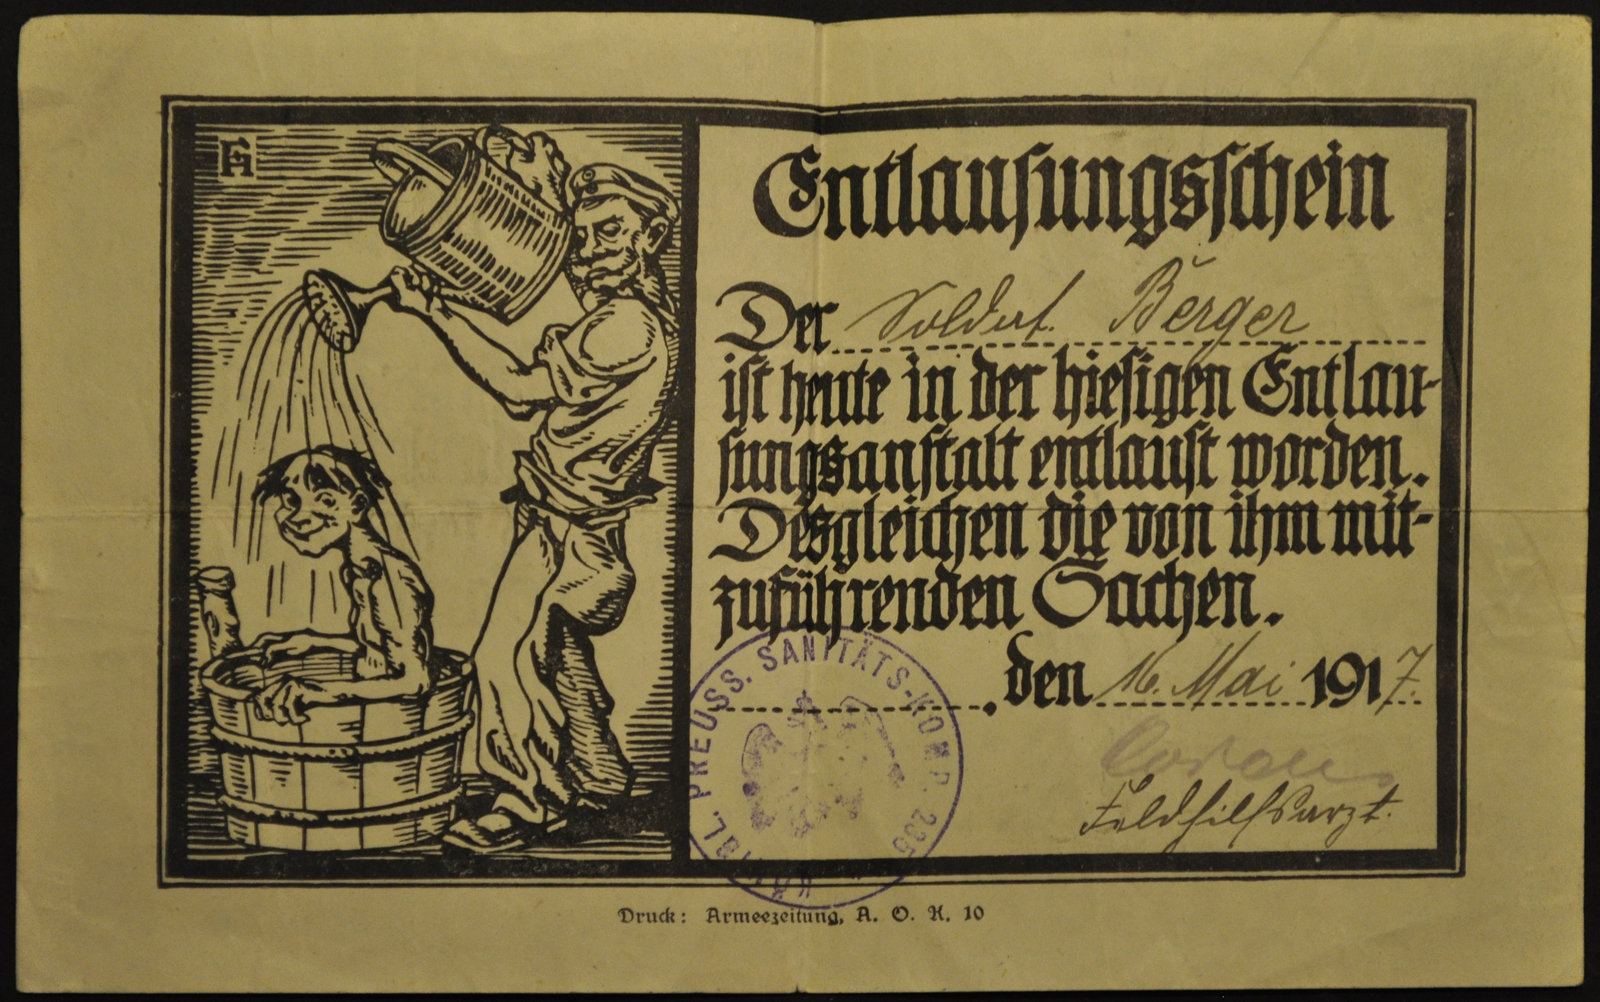 Delousing chit with a stamp on it, 1917, Europeana 1914- 1918 / Helga Berger, CC BY-SA